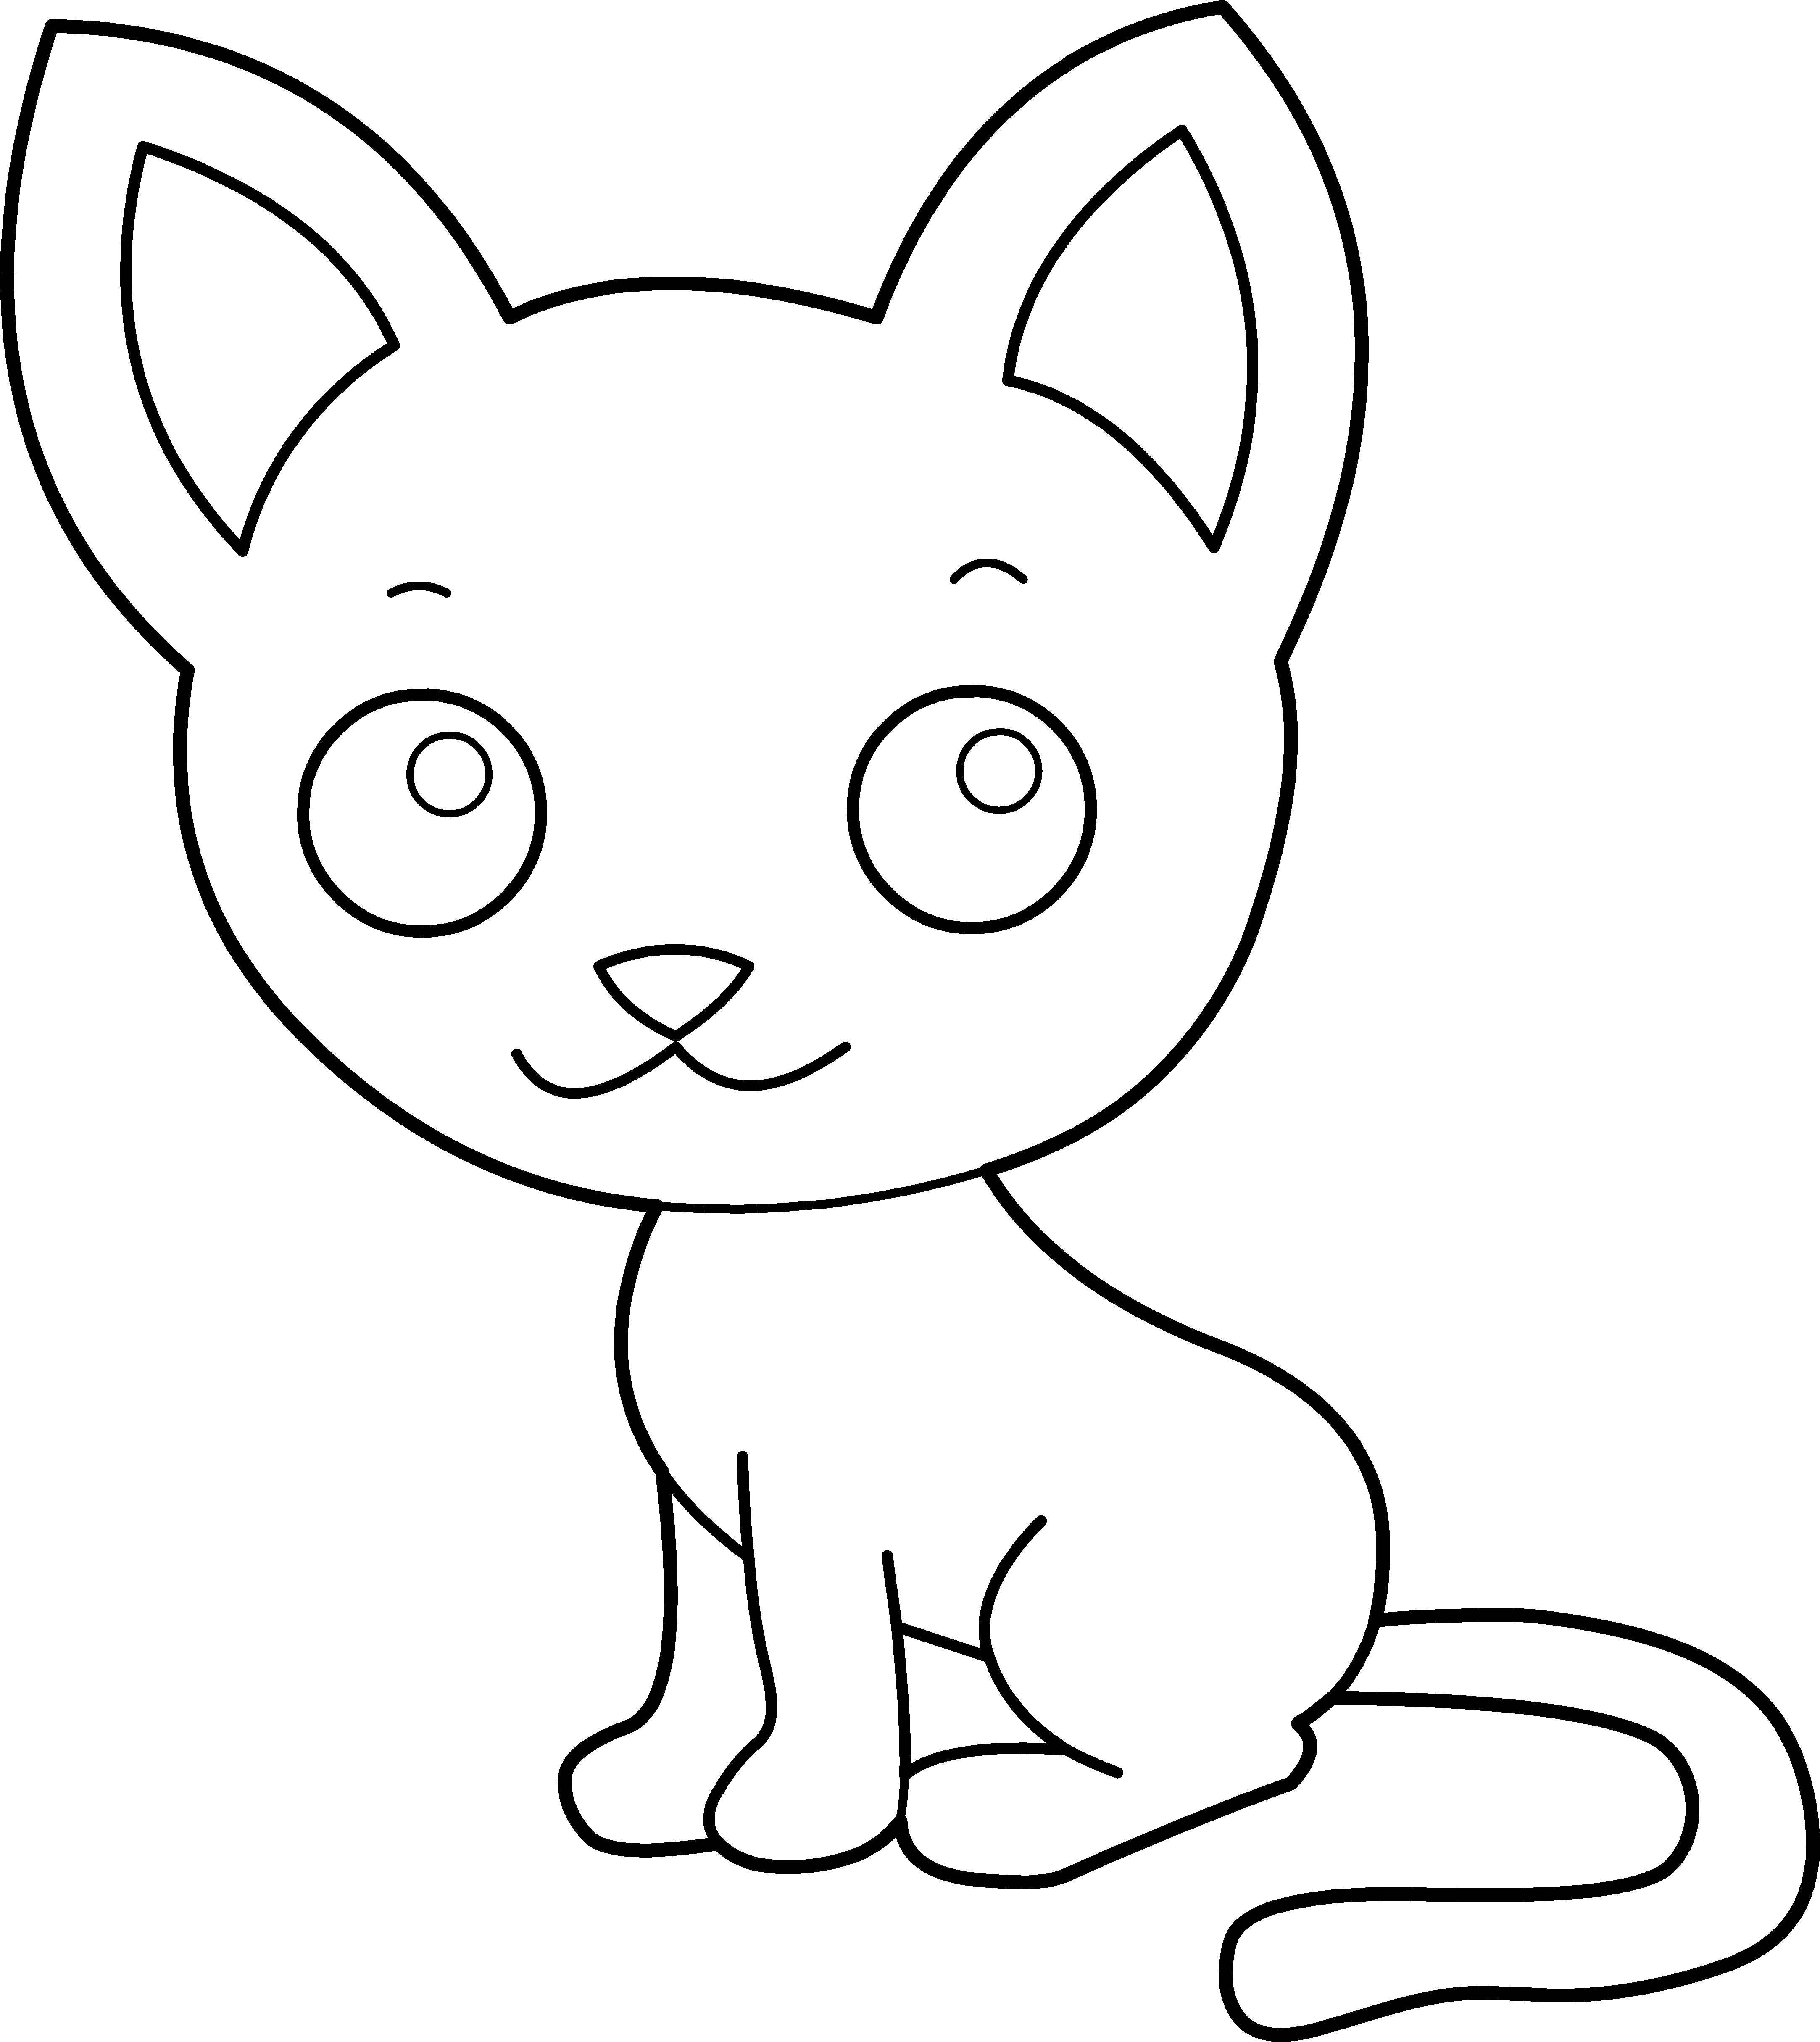 Kitty clipart big cat. Free cartoon kitten images